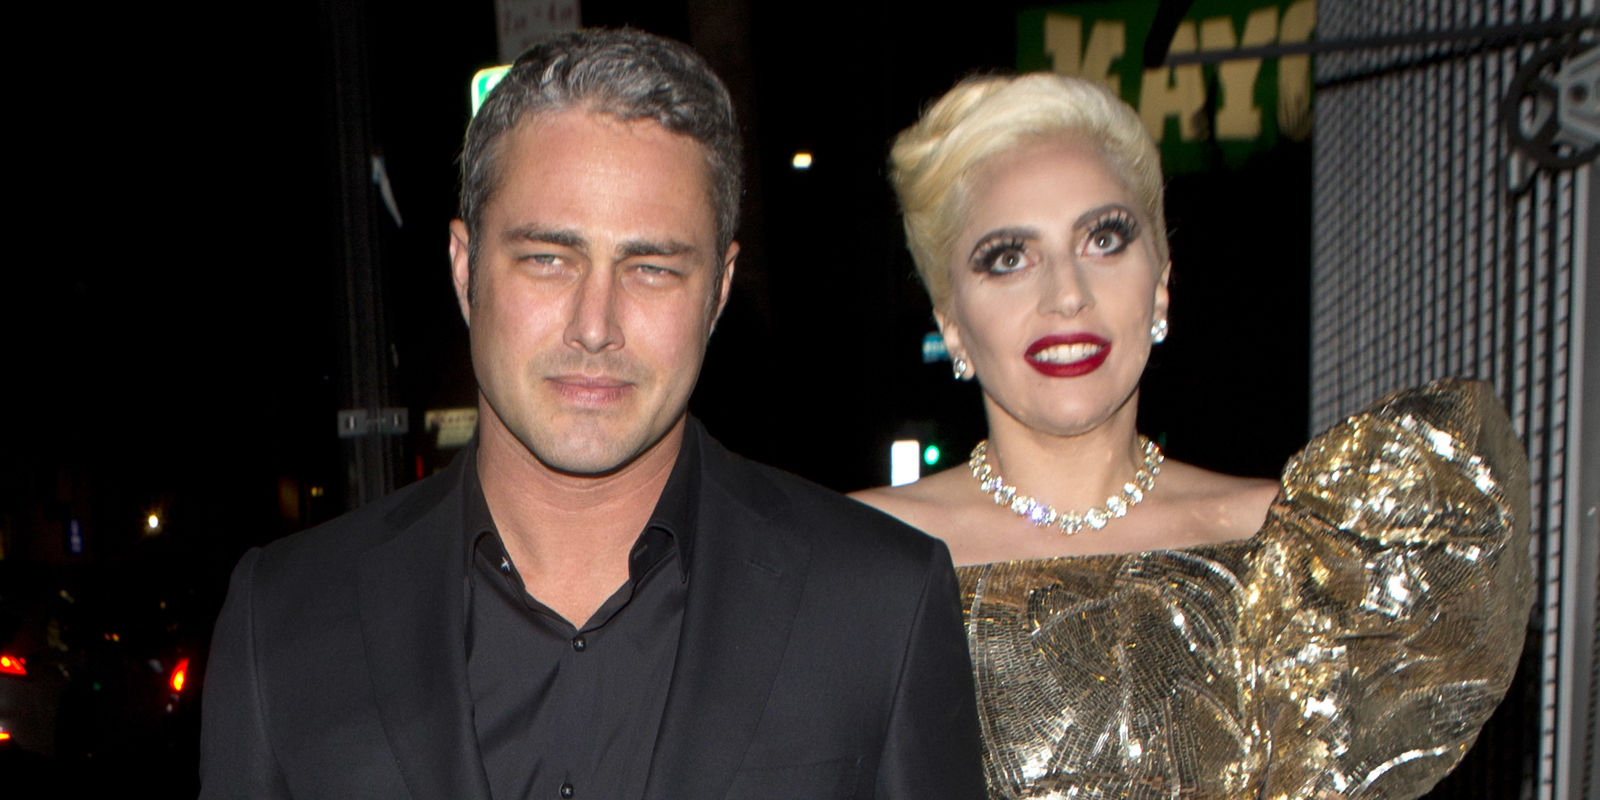 Has Lady Gaga Married Taylor Kinney?